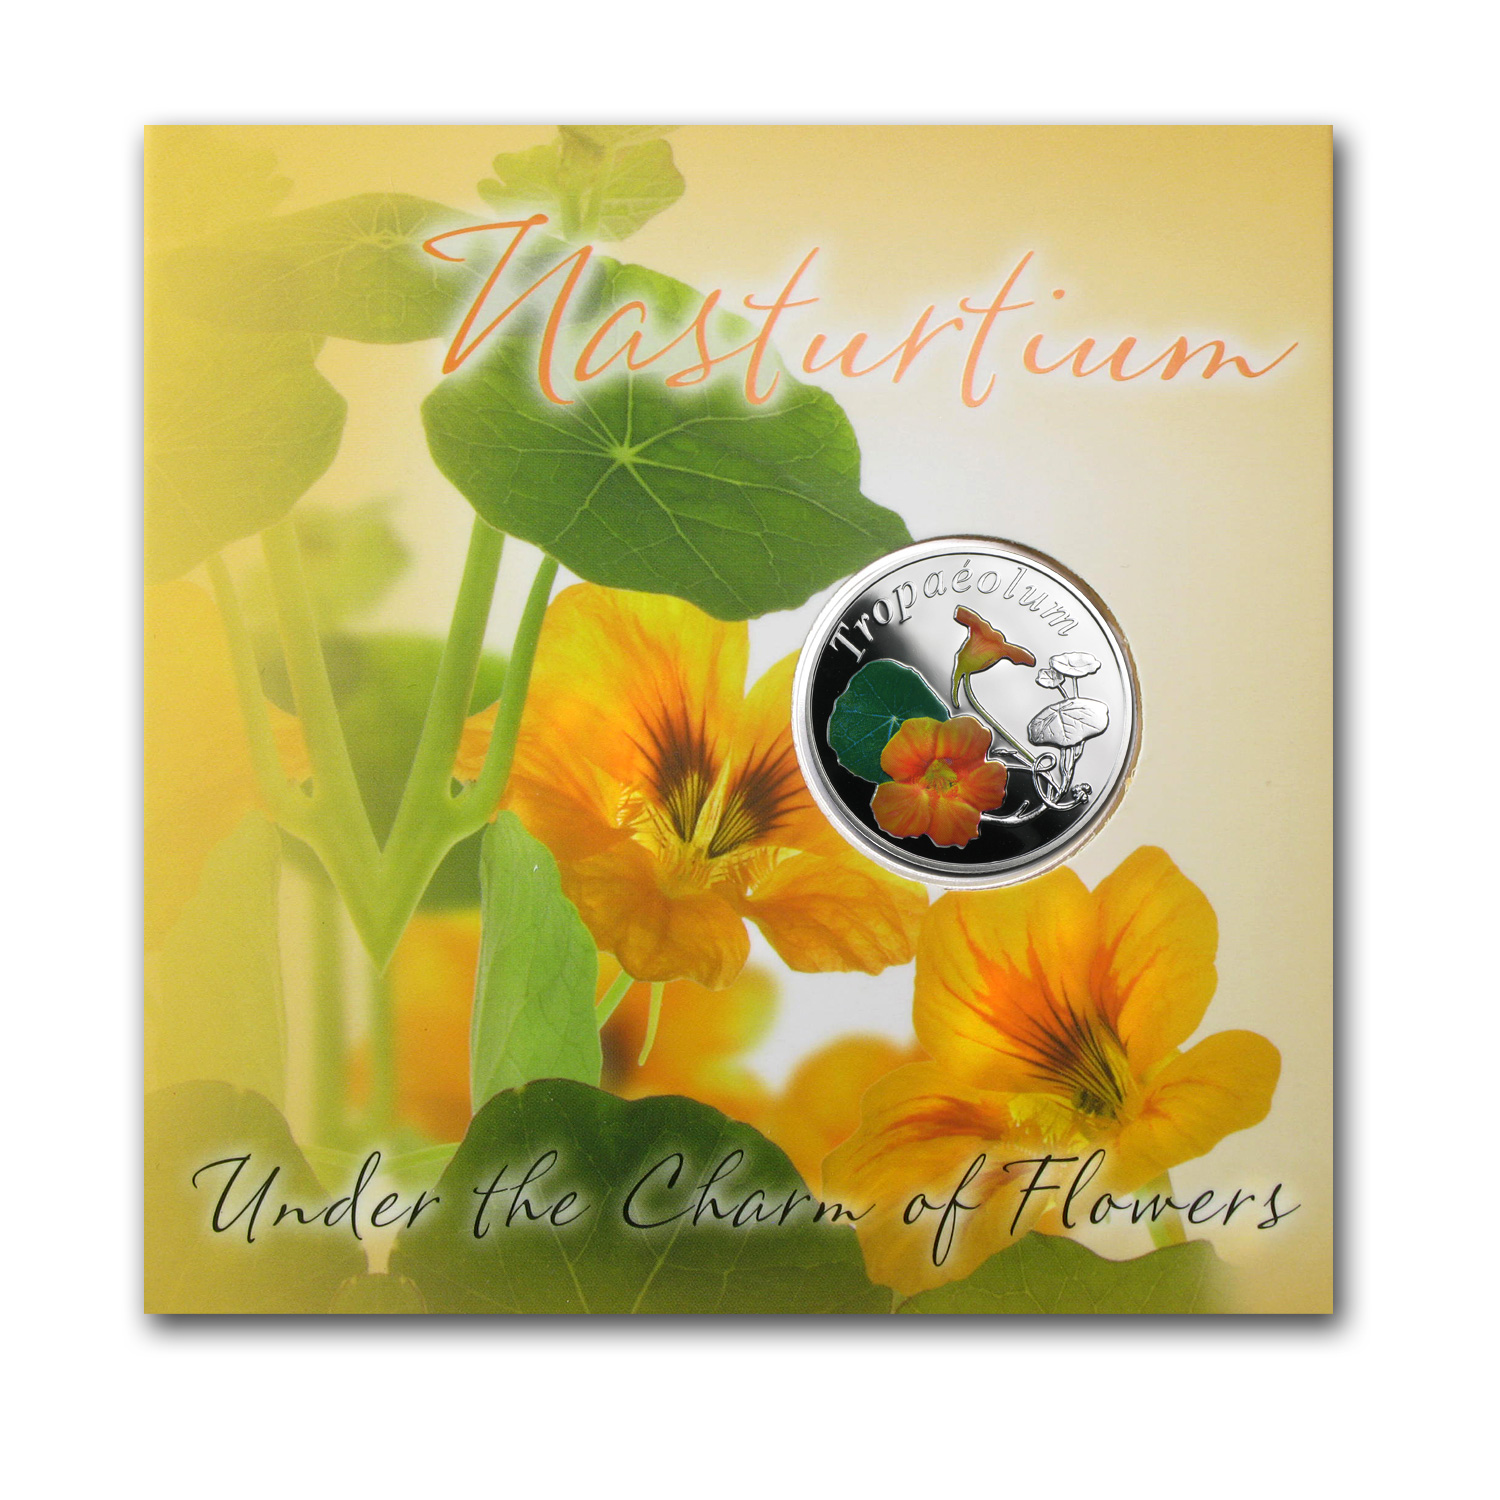 2013 Belarus Silver Proof Under the Charm of Flowers Nasturtium